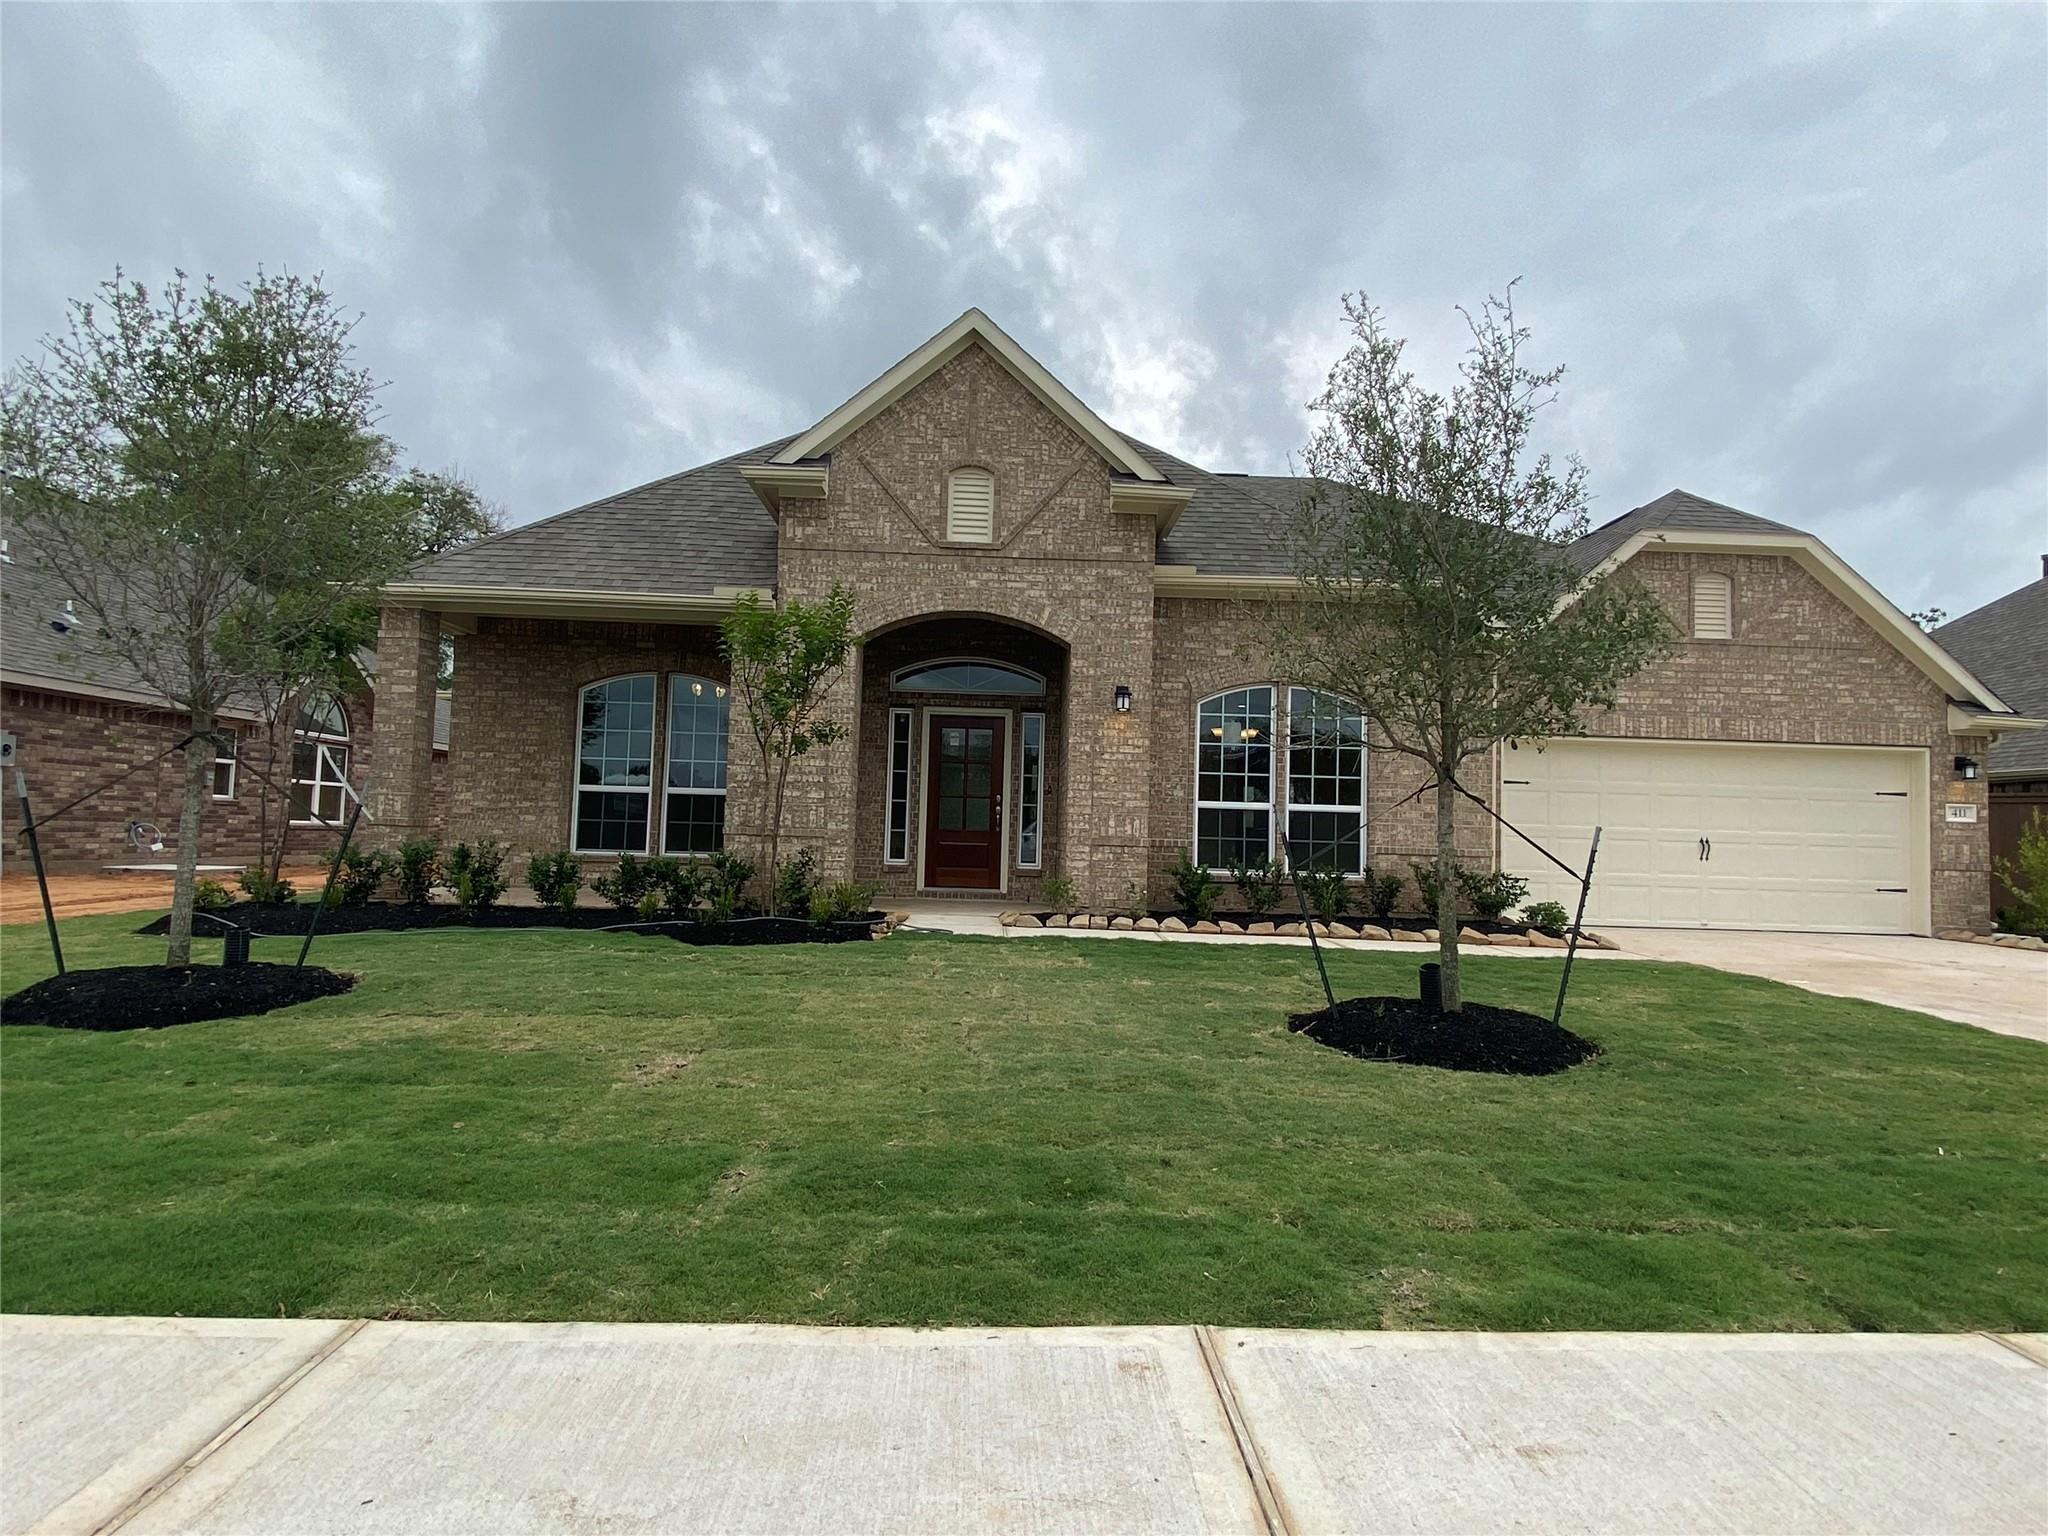 411 Bentwood Way Property Photo - Clute, TX real estate listing